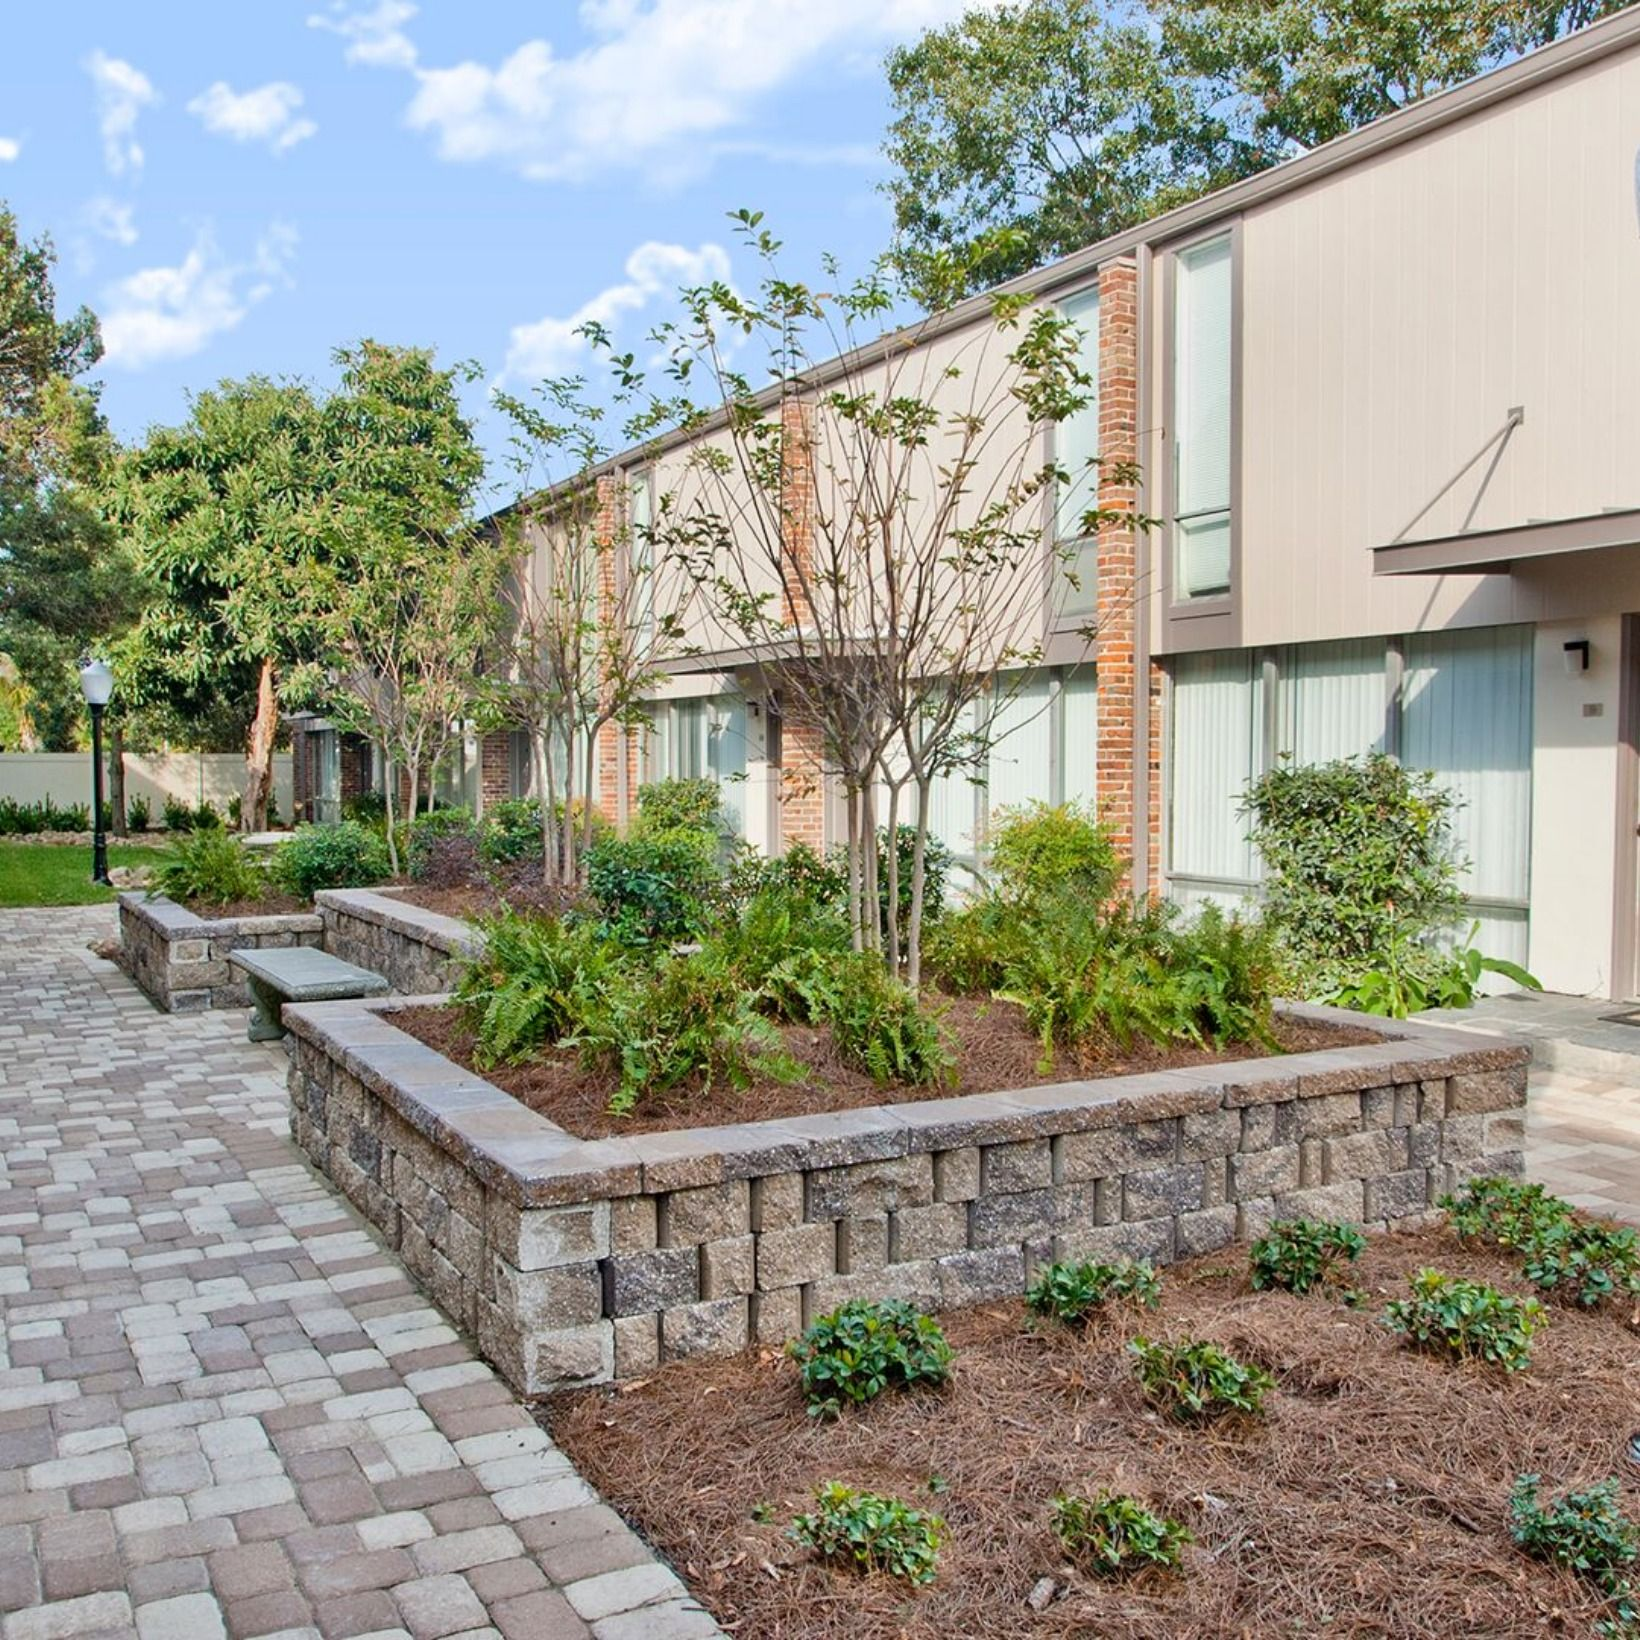 Properties: New Orleans Apartments